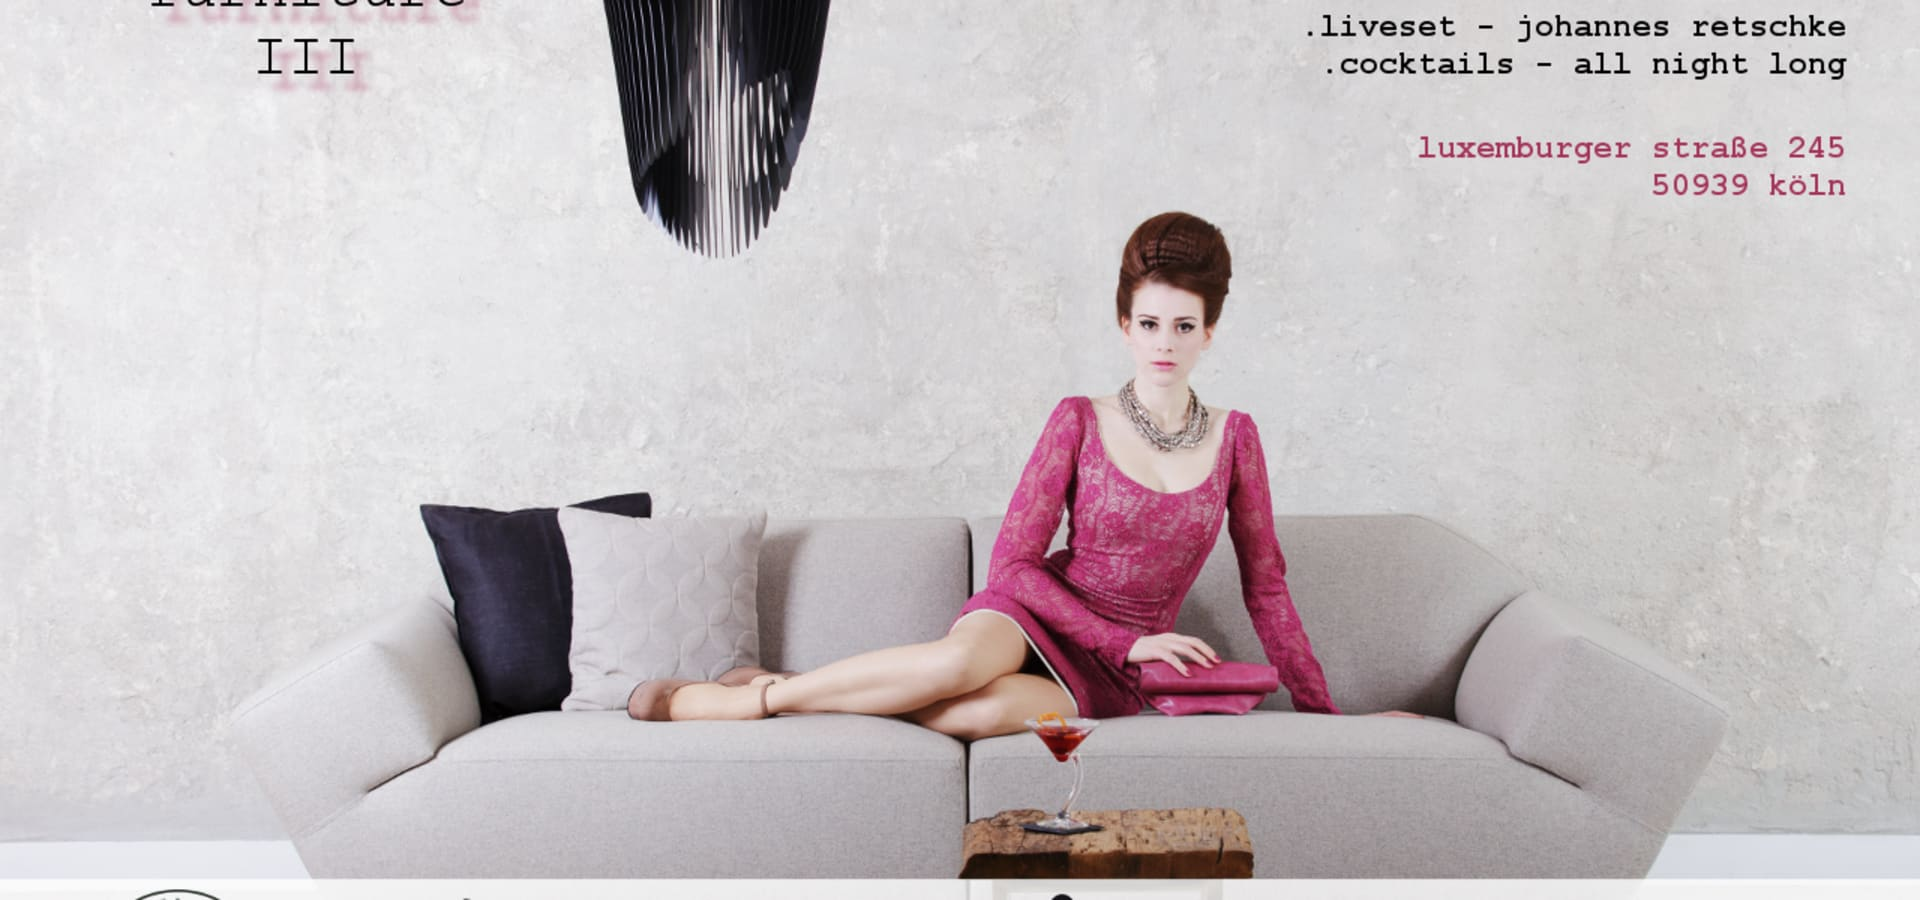 Fashion Meets Furniture Iii By Living Wohndesign By Terry Palmer